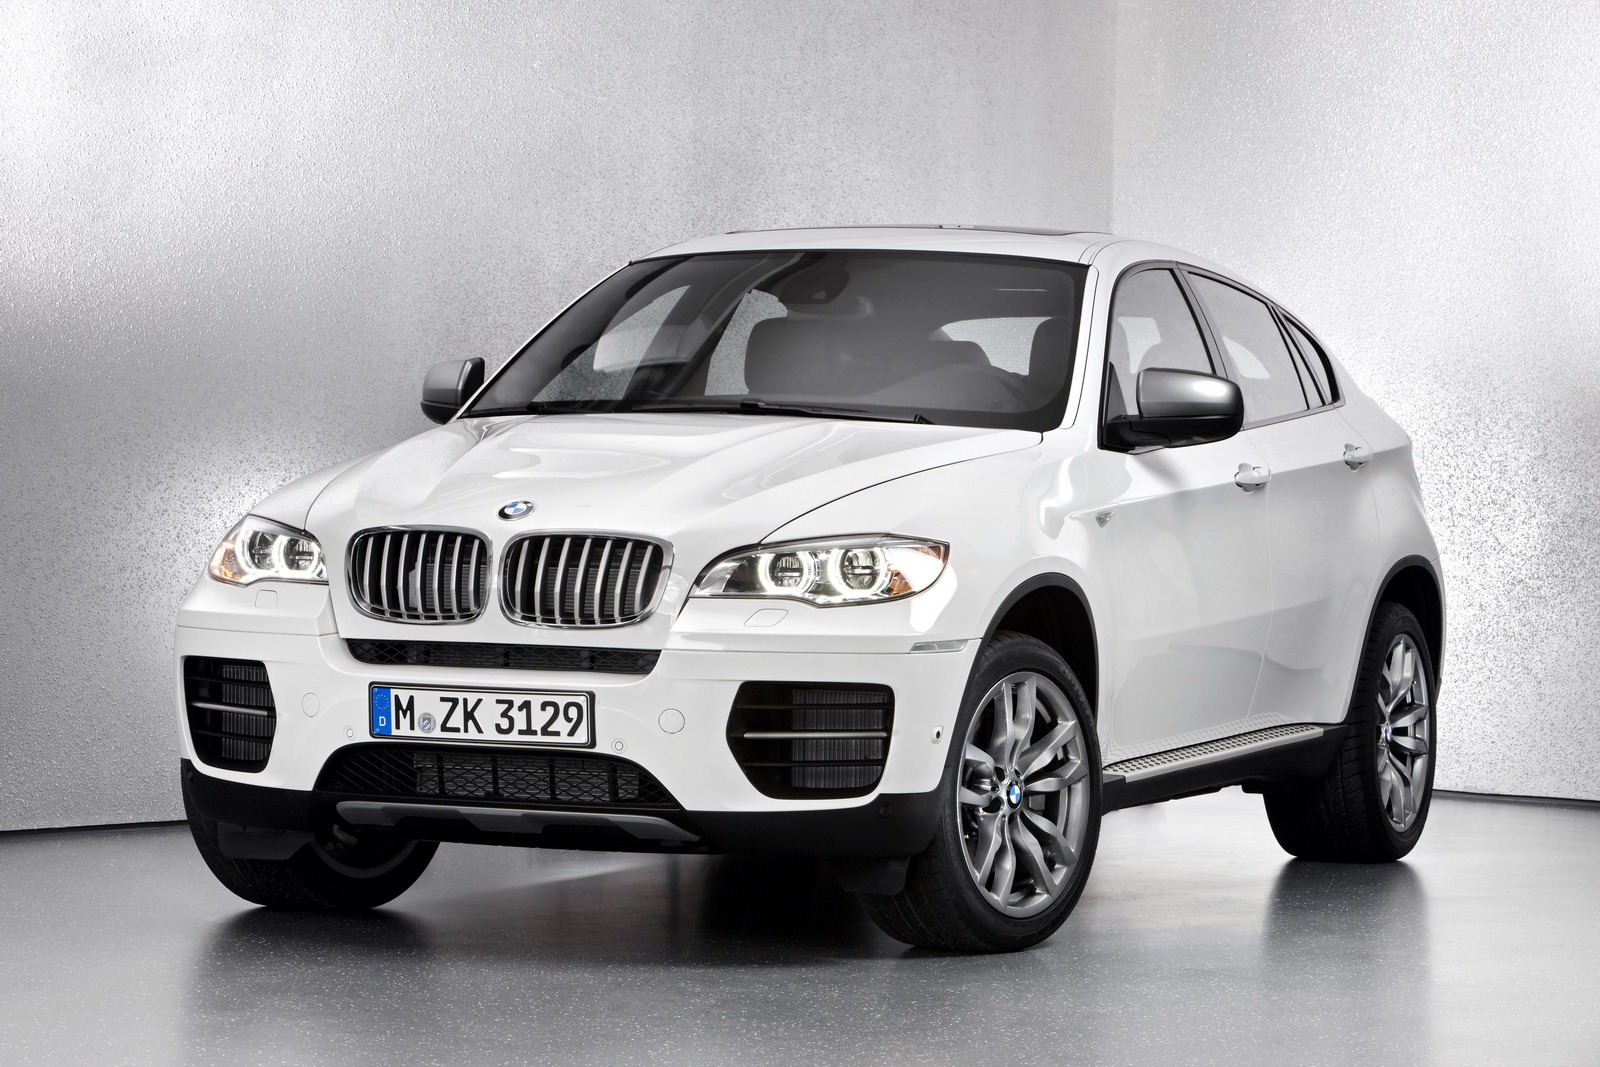 2013 Bmw X6 M50d Equipment List Revealed Autoevolution